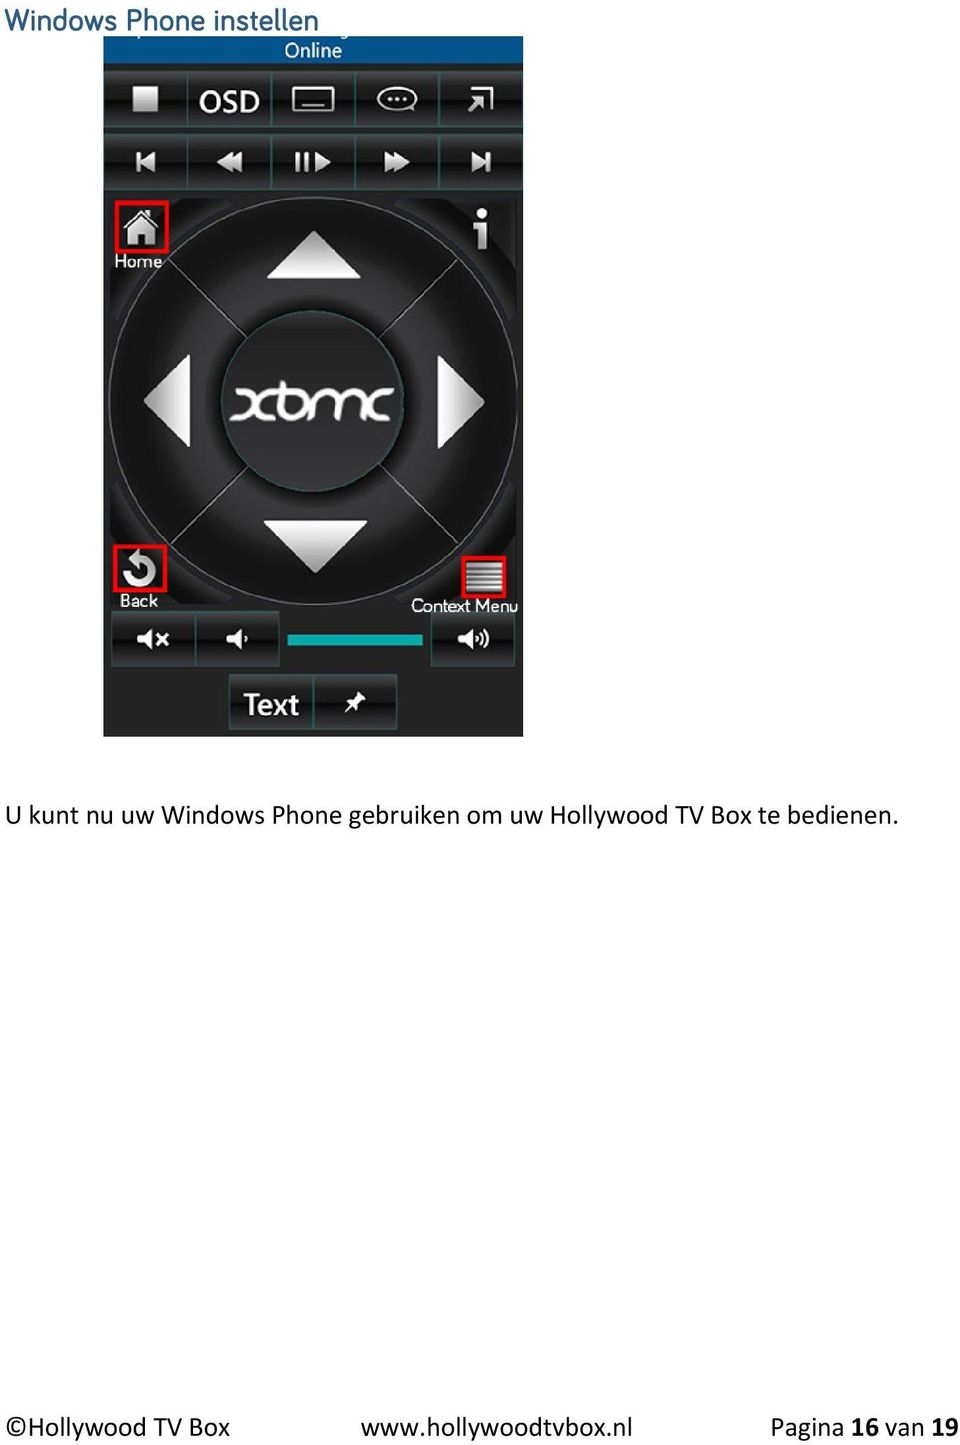 Hollywood TV Box te bedienen.